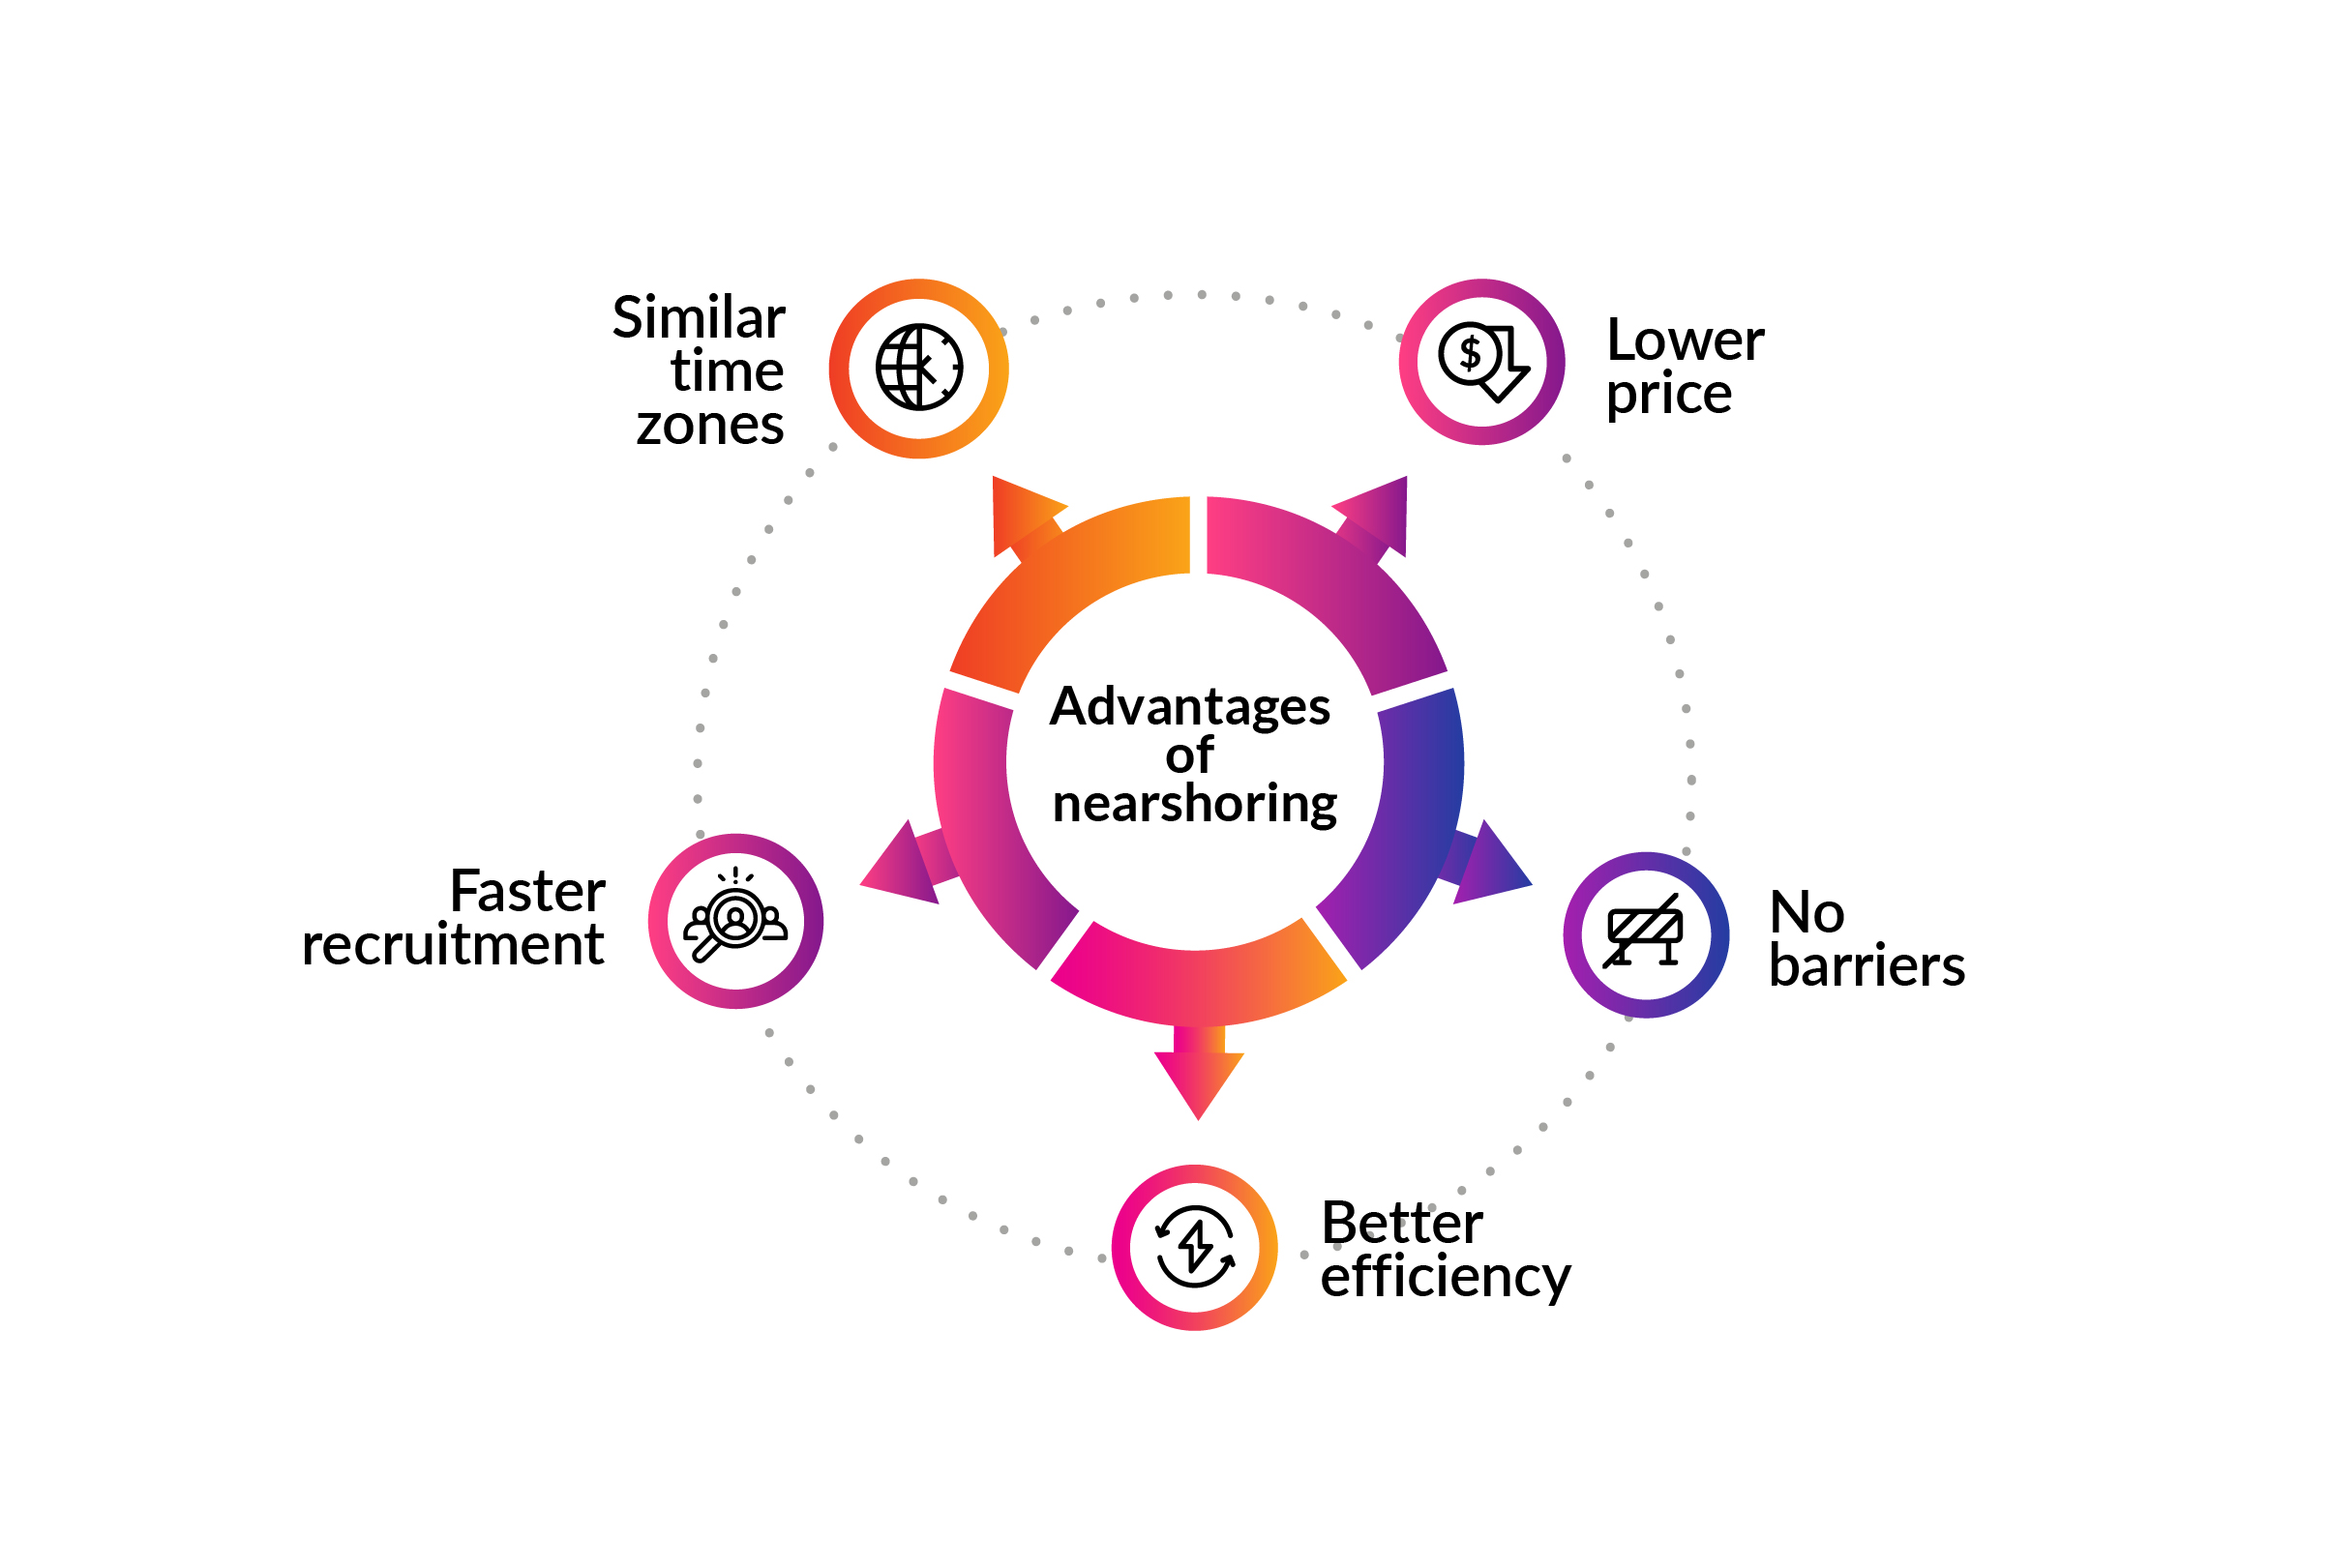 Nearshoring advantages